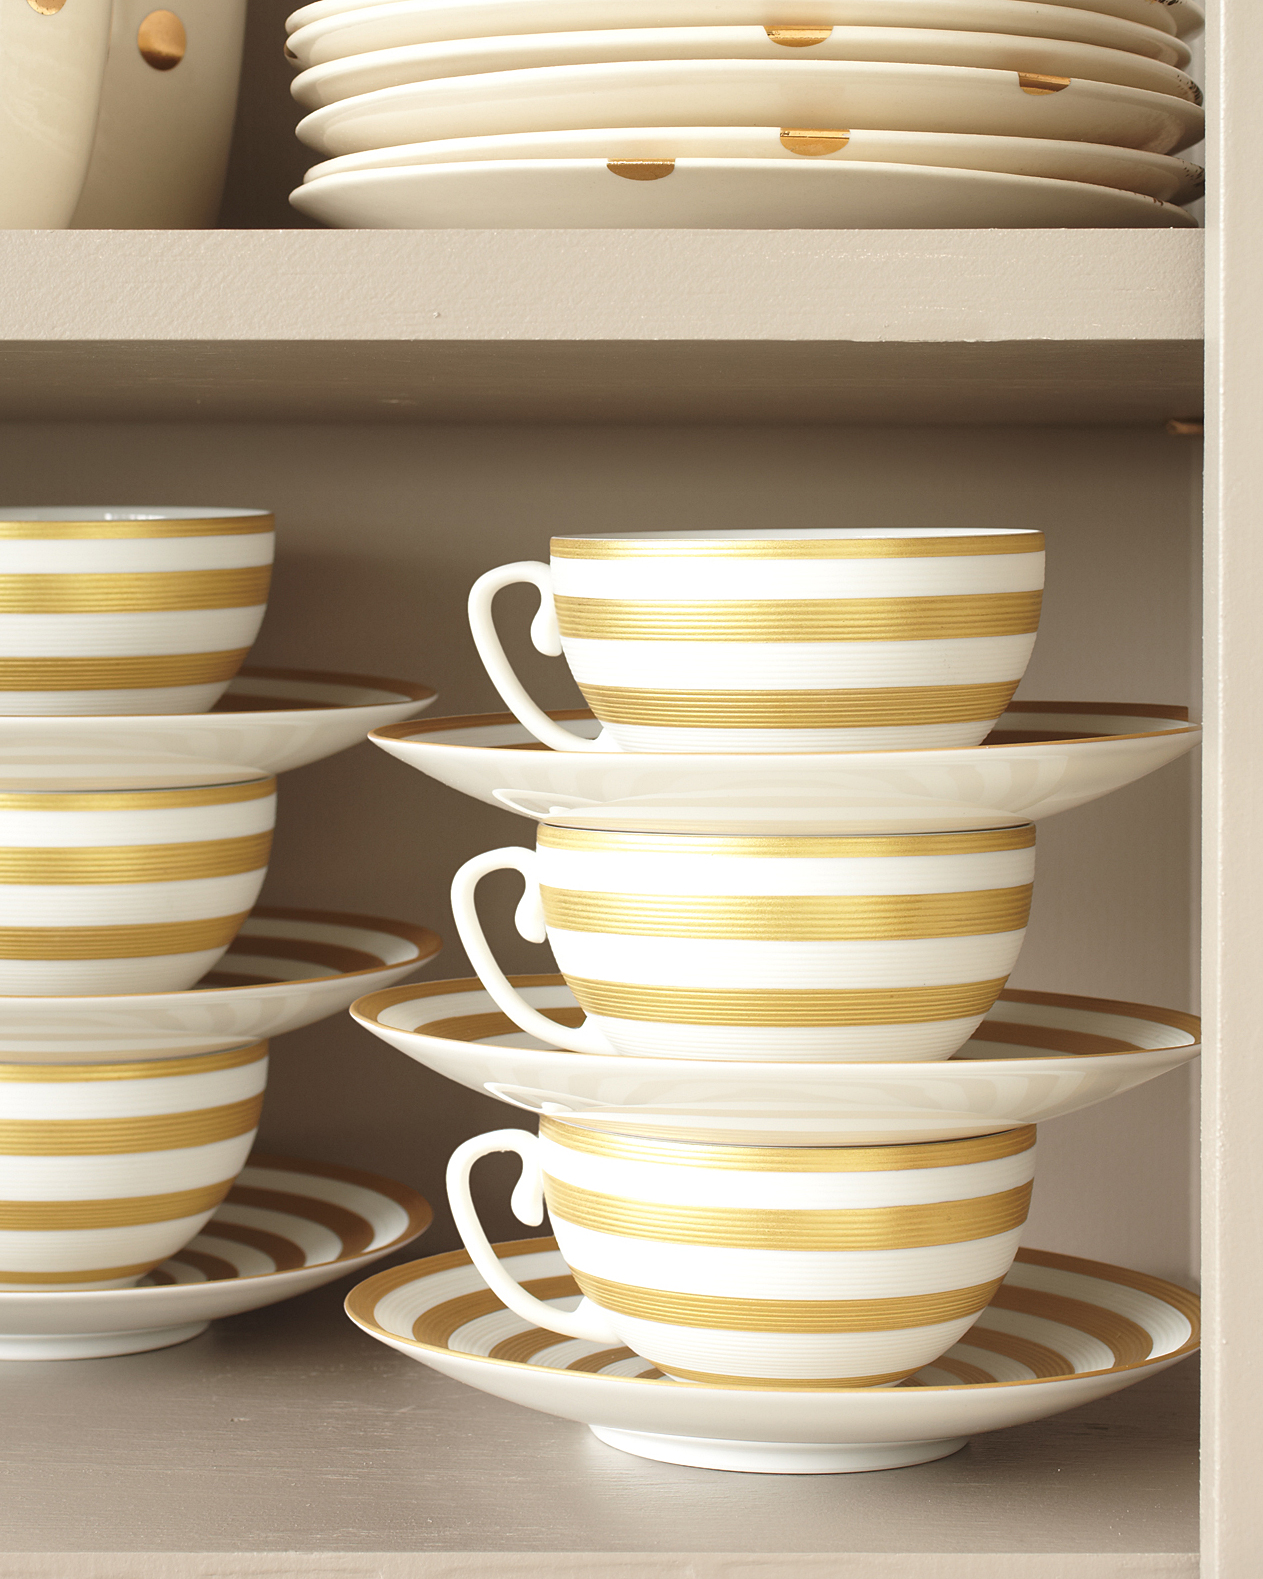 Teacup Storage Solution